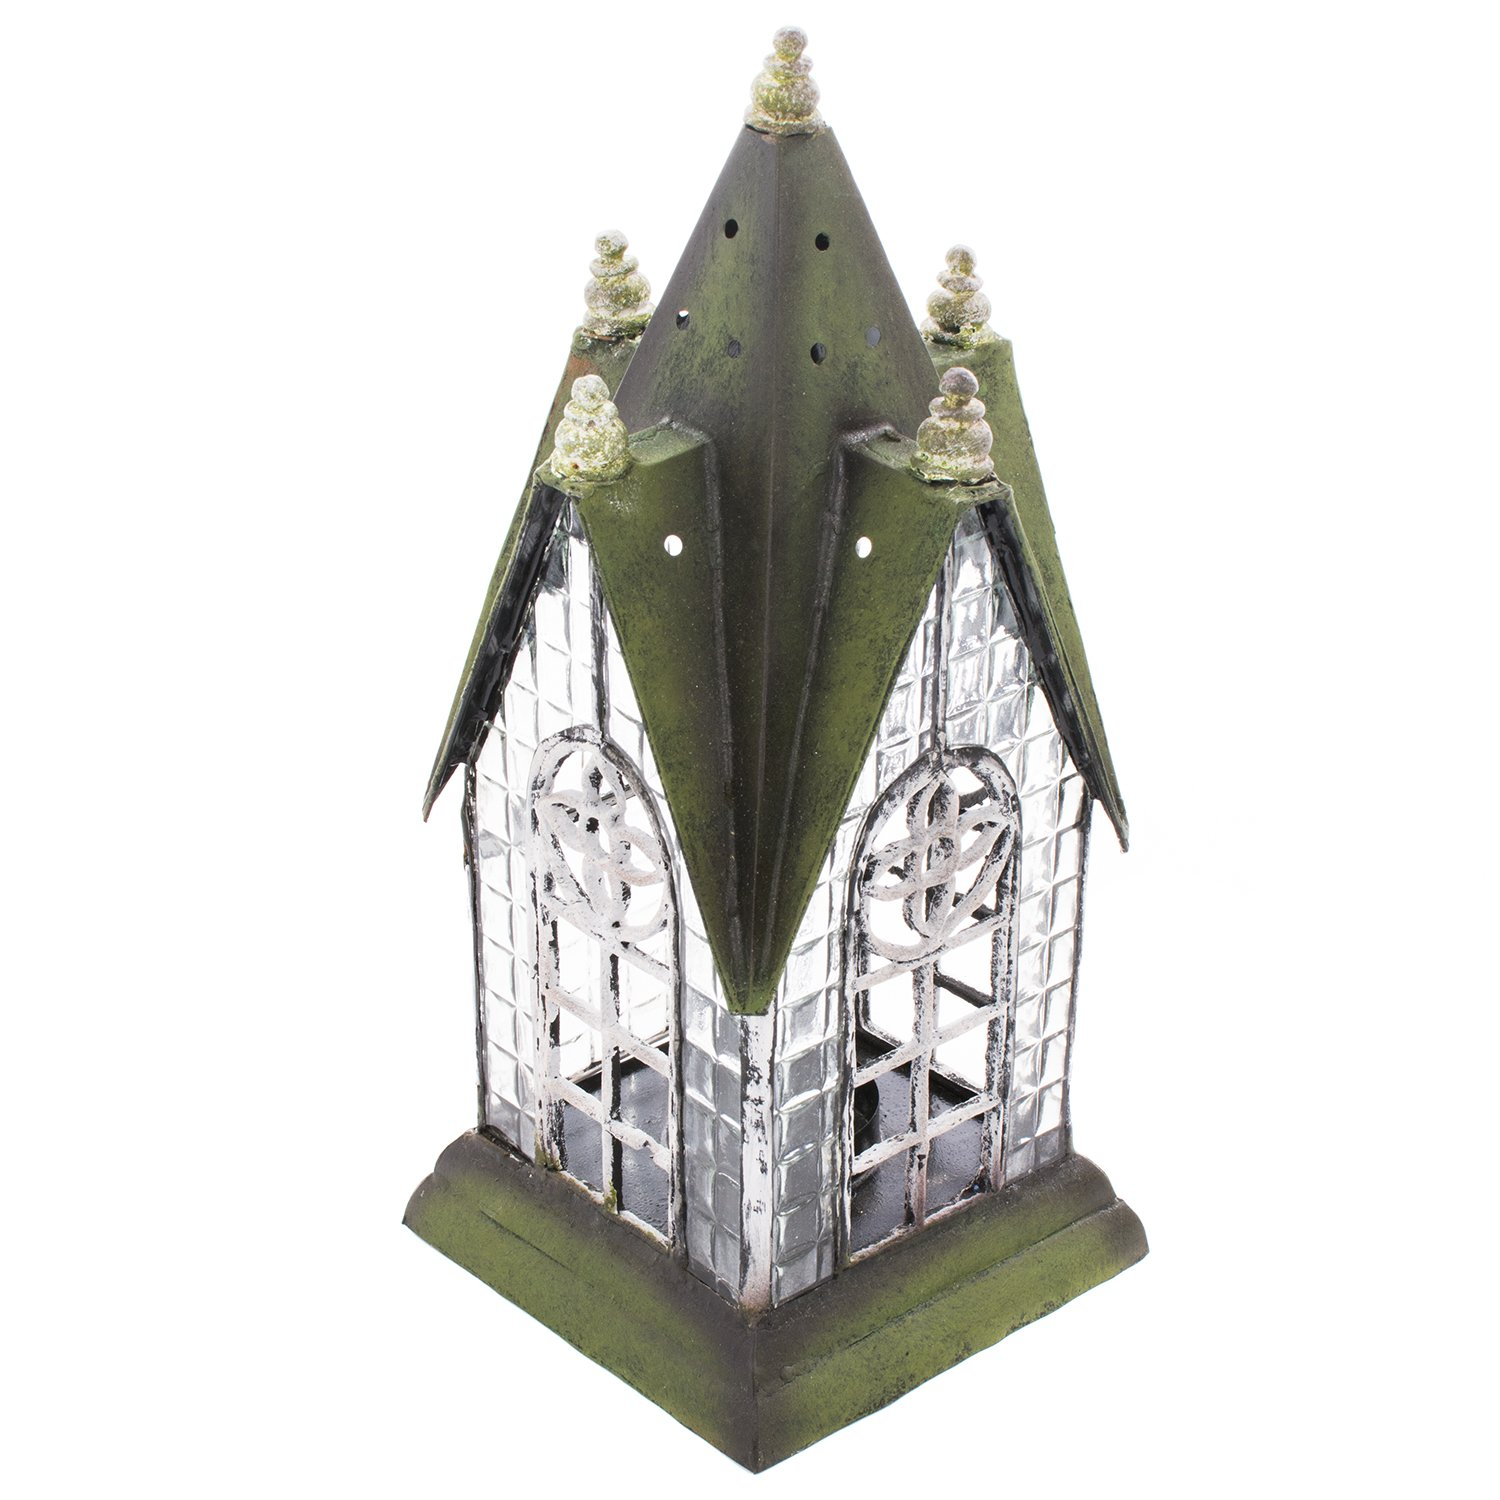 English Pennington Lantern Tea Light Candle Holder - ChristmasTablescapeDecor.com